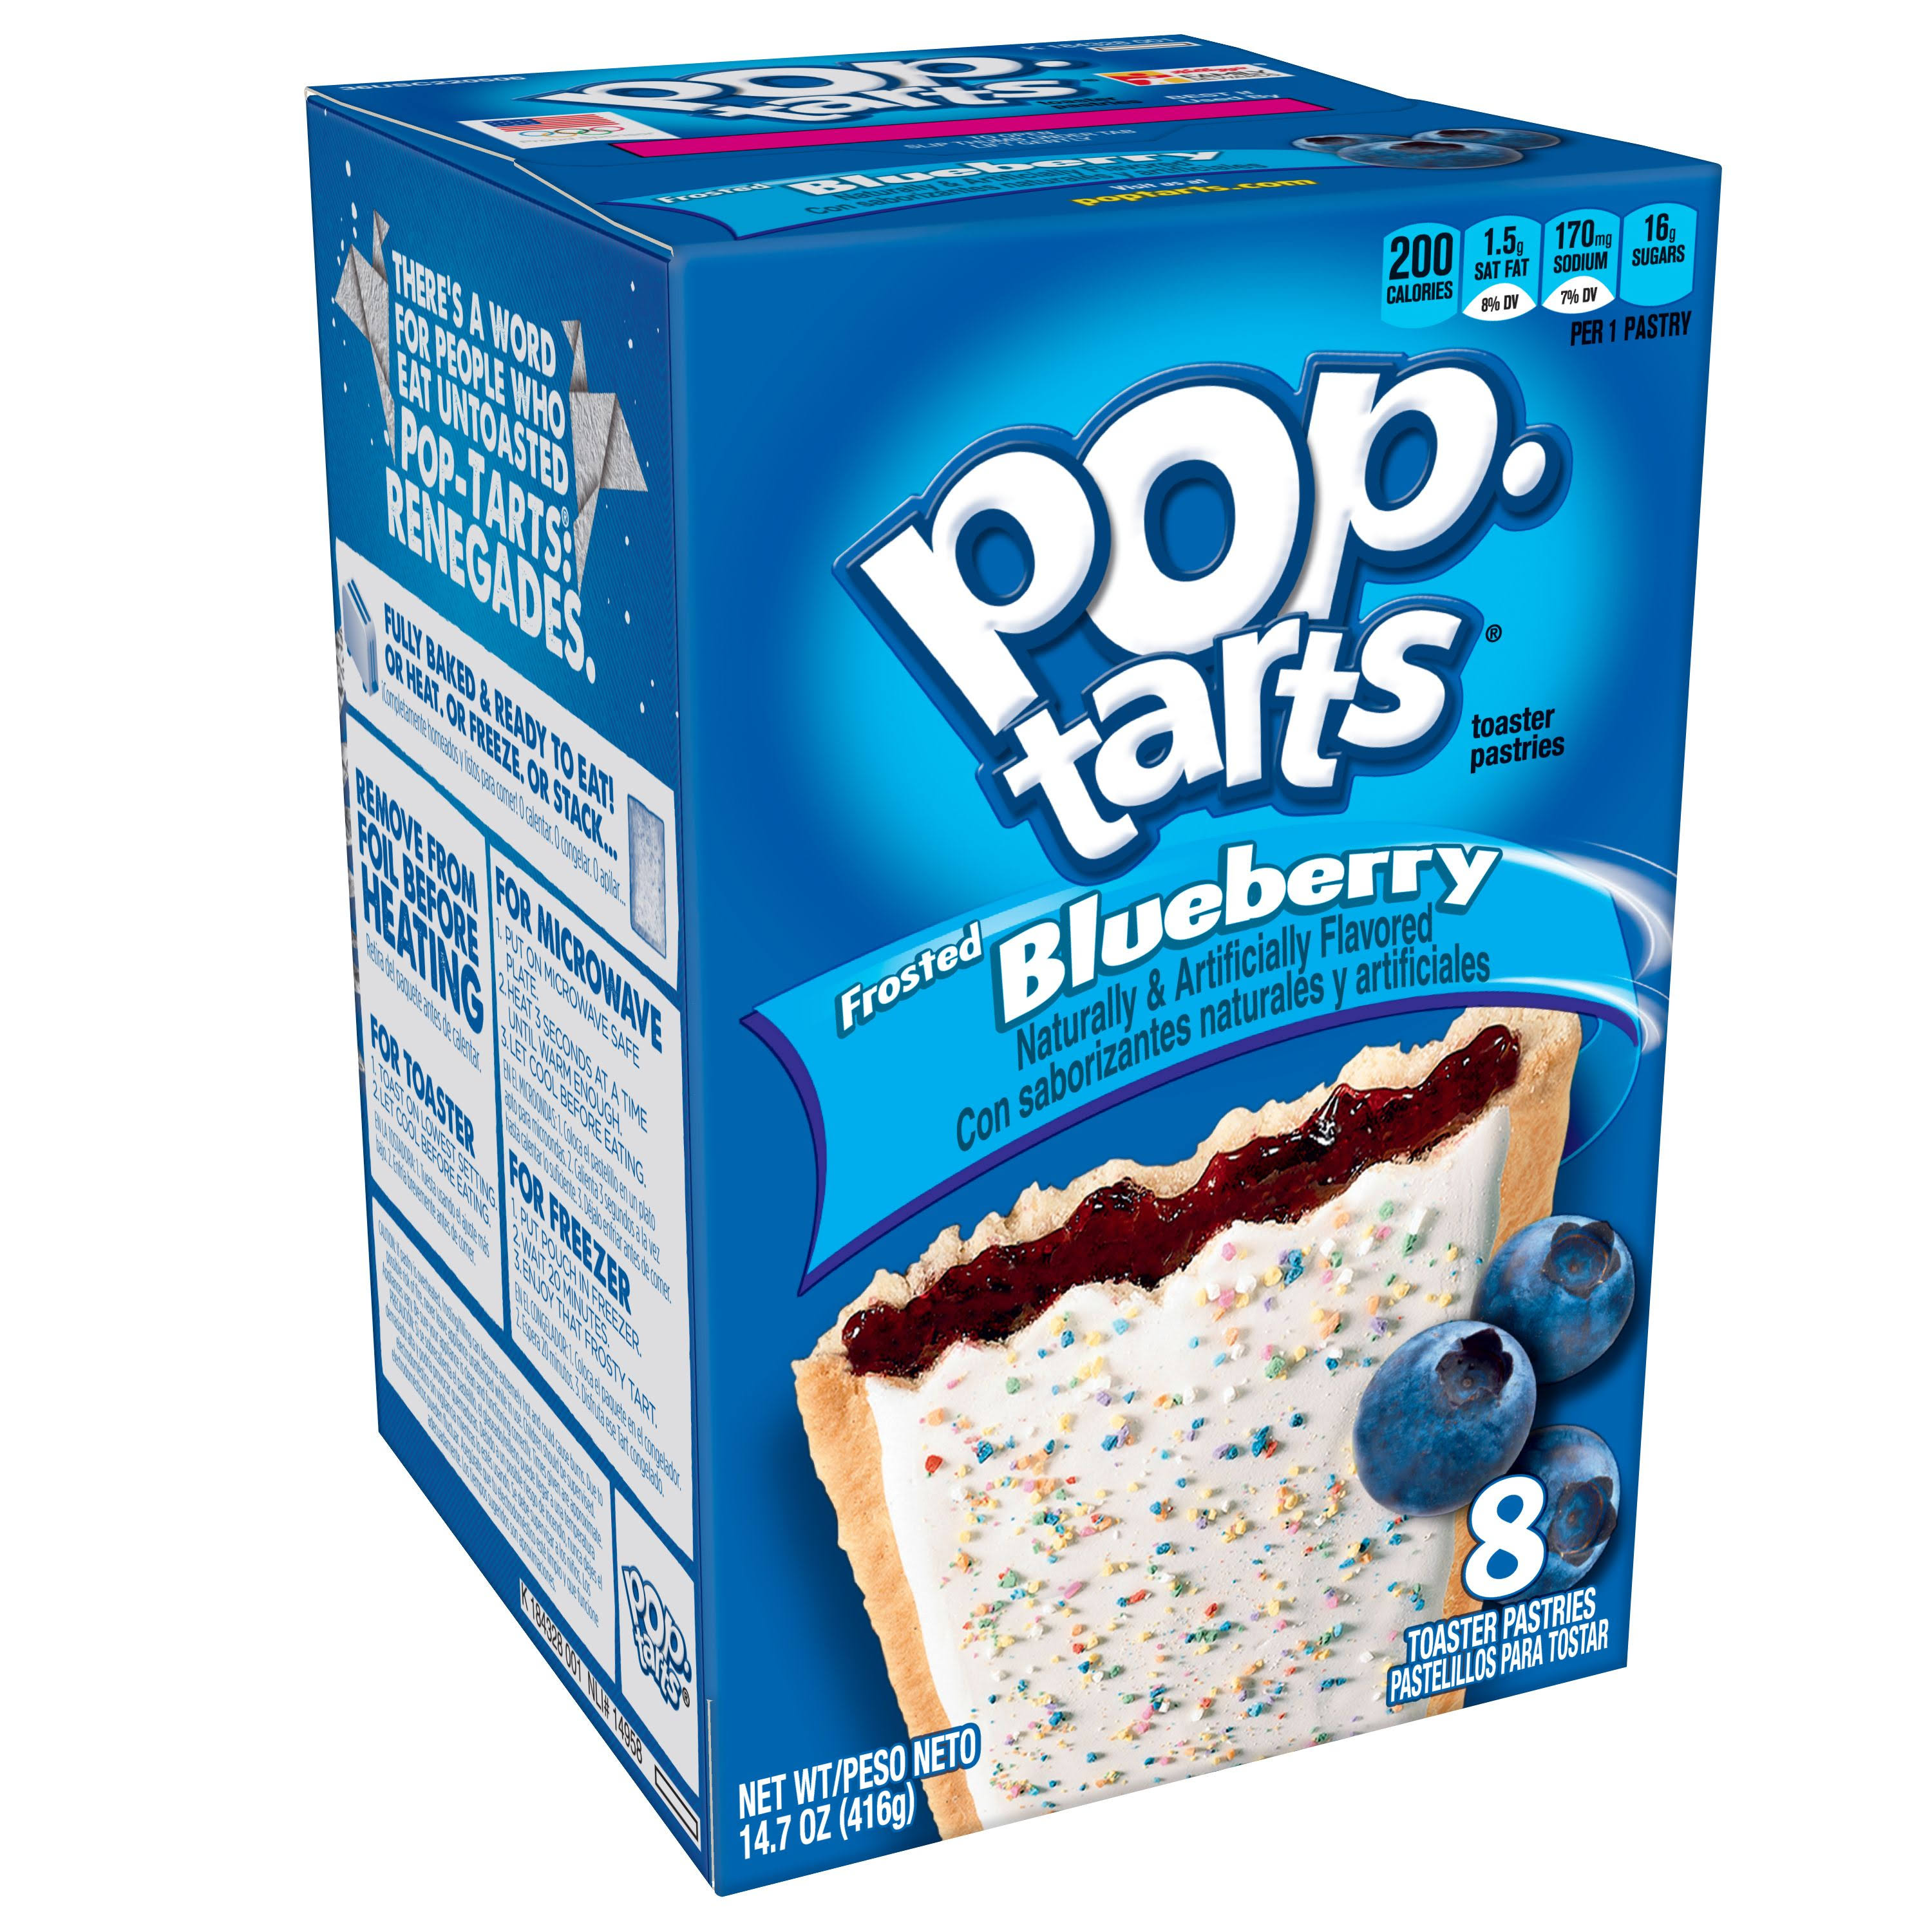 Kellogg's Pop Tarts - 416g, Frosted Blueberry, 8 Toaster Pastries